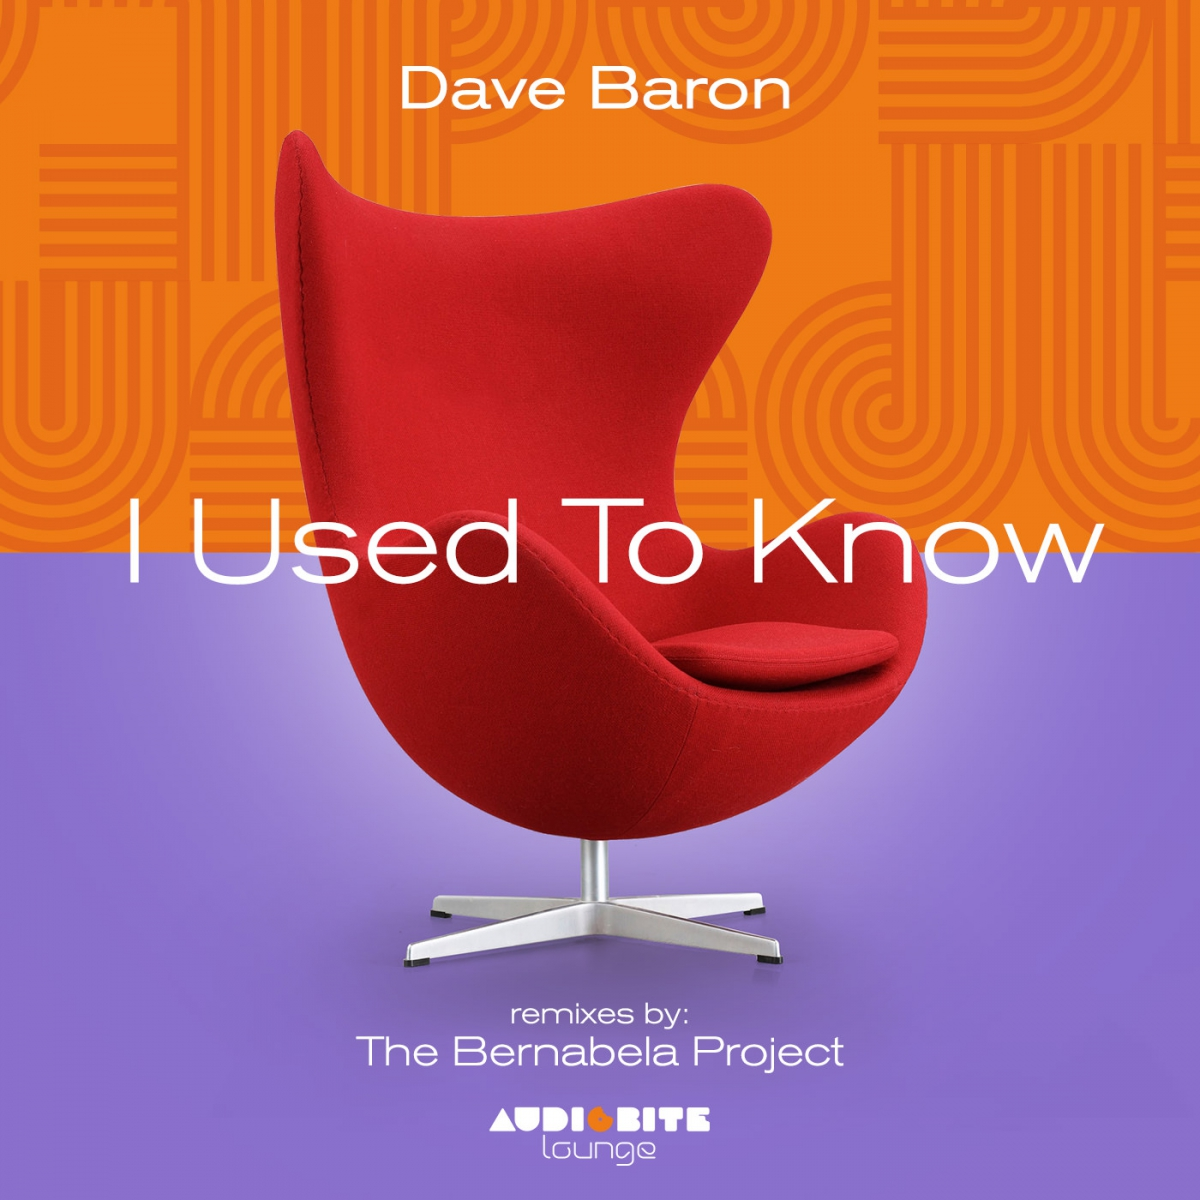 AUDIOBITE Lounge : Dave Baron - I Used To Know